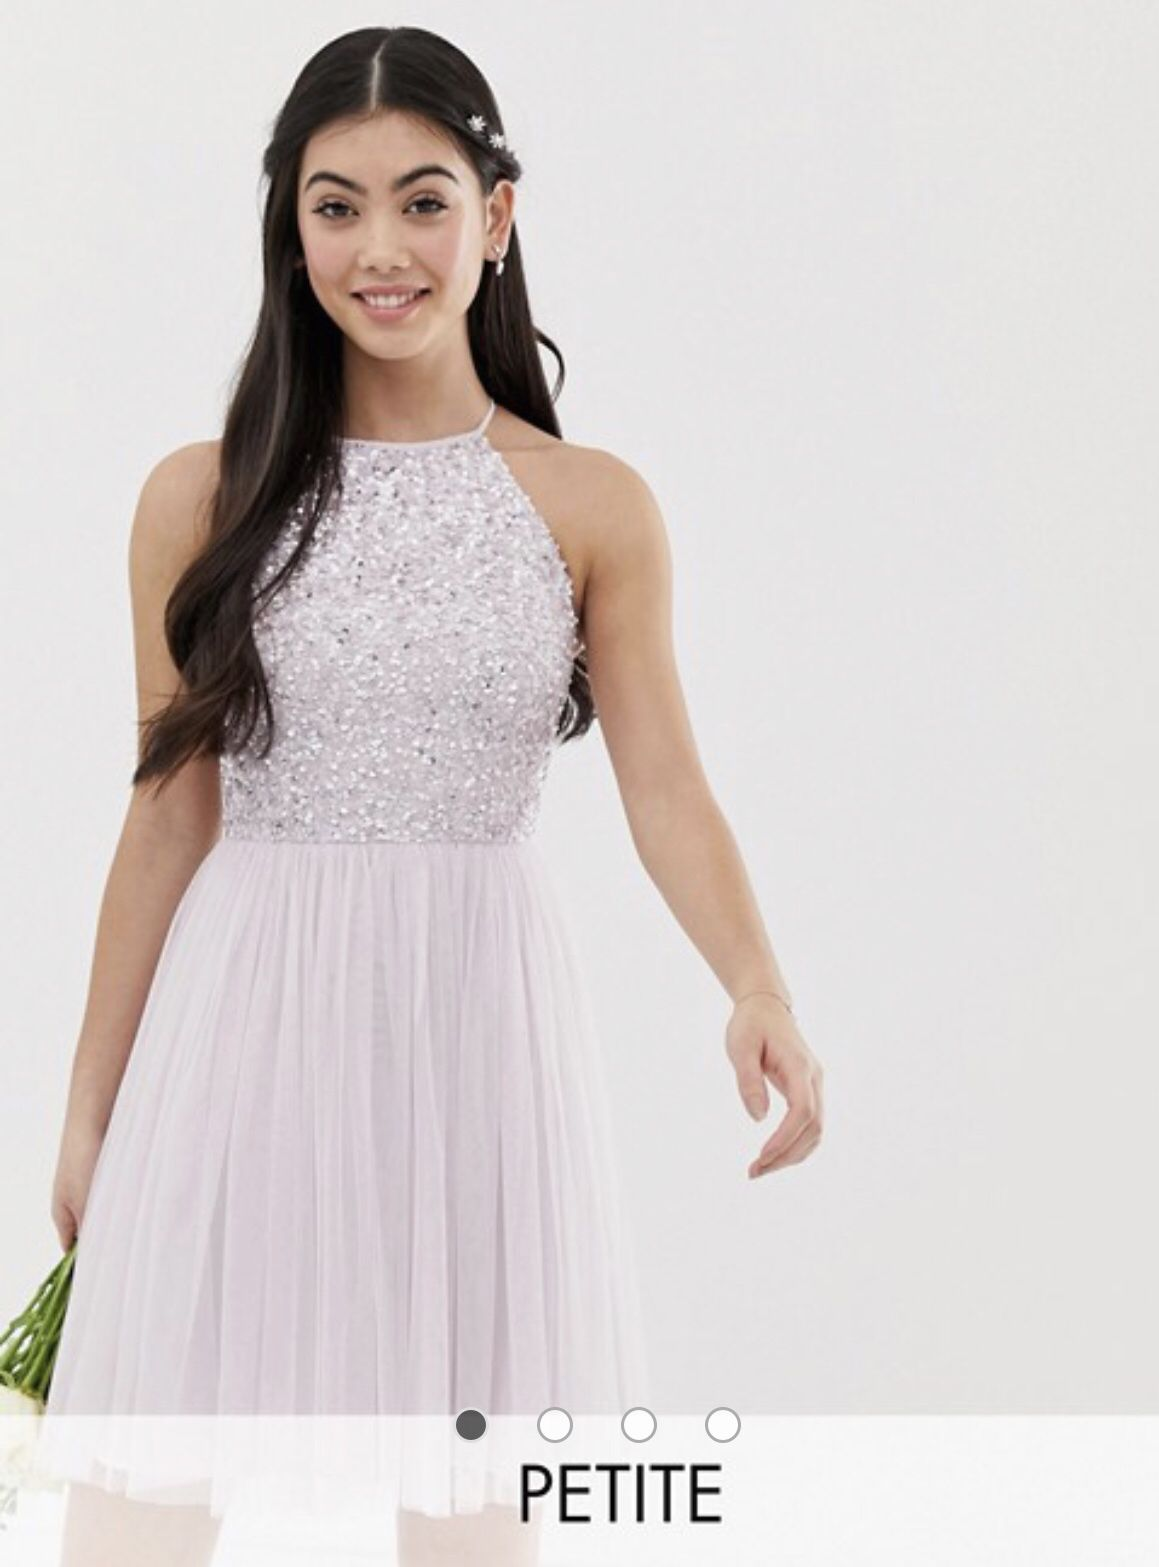 Maya Petite Bridesmaid Halter Neck Mini Tulle Dress With Tonal Delicate Sequins In Soft Lilac Asos Bridesmaid Sleeveless Tulle Dress Maxi Dress Prom